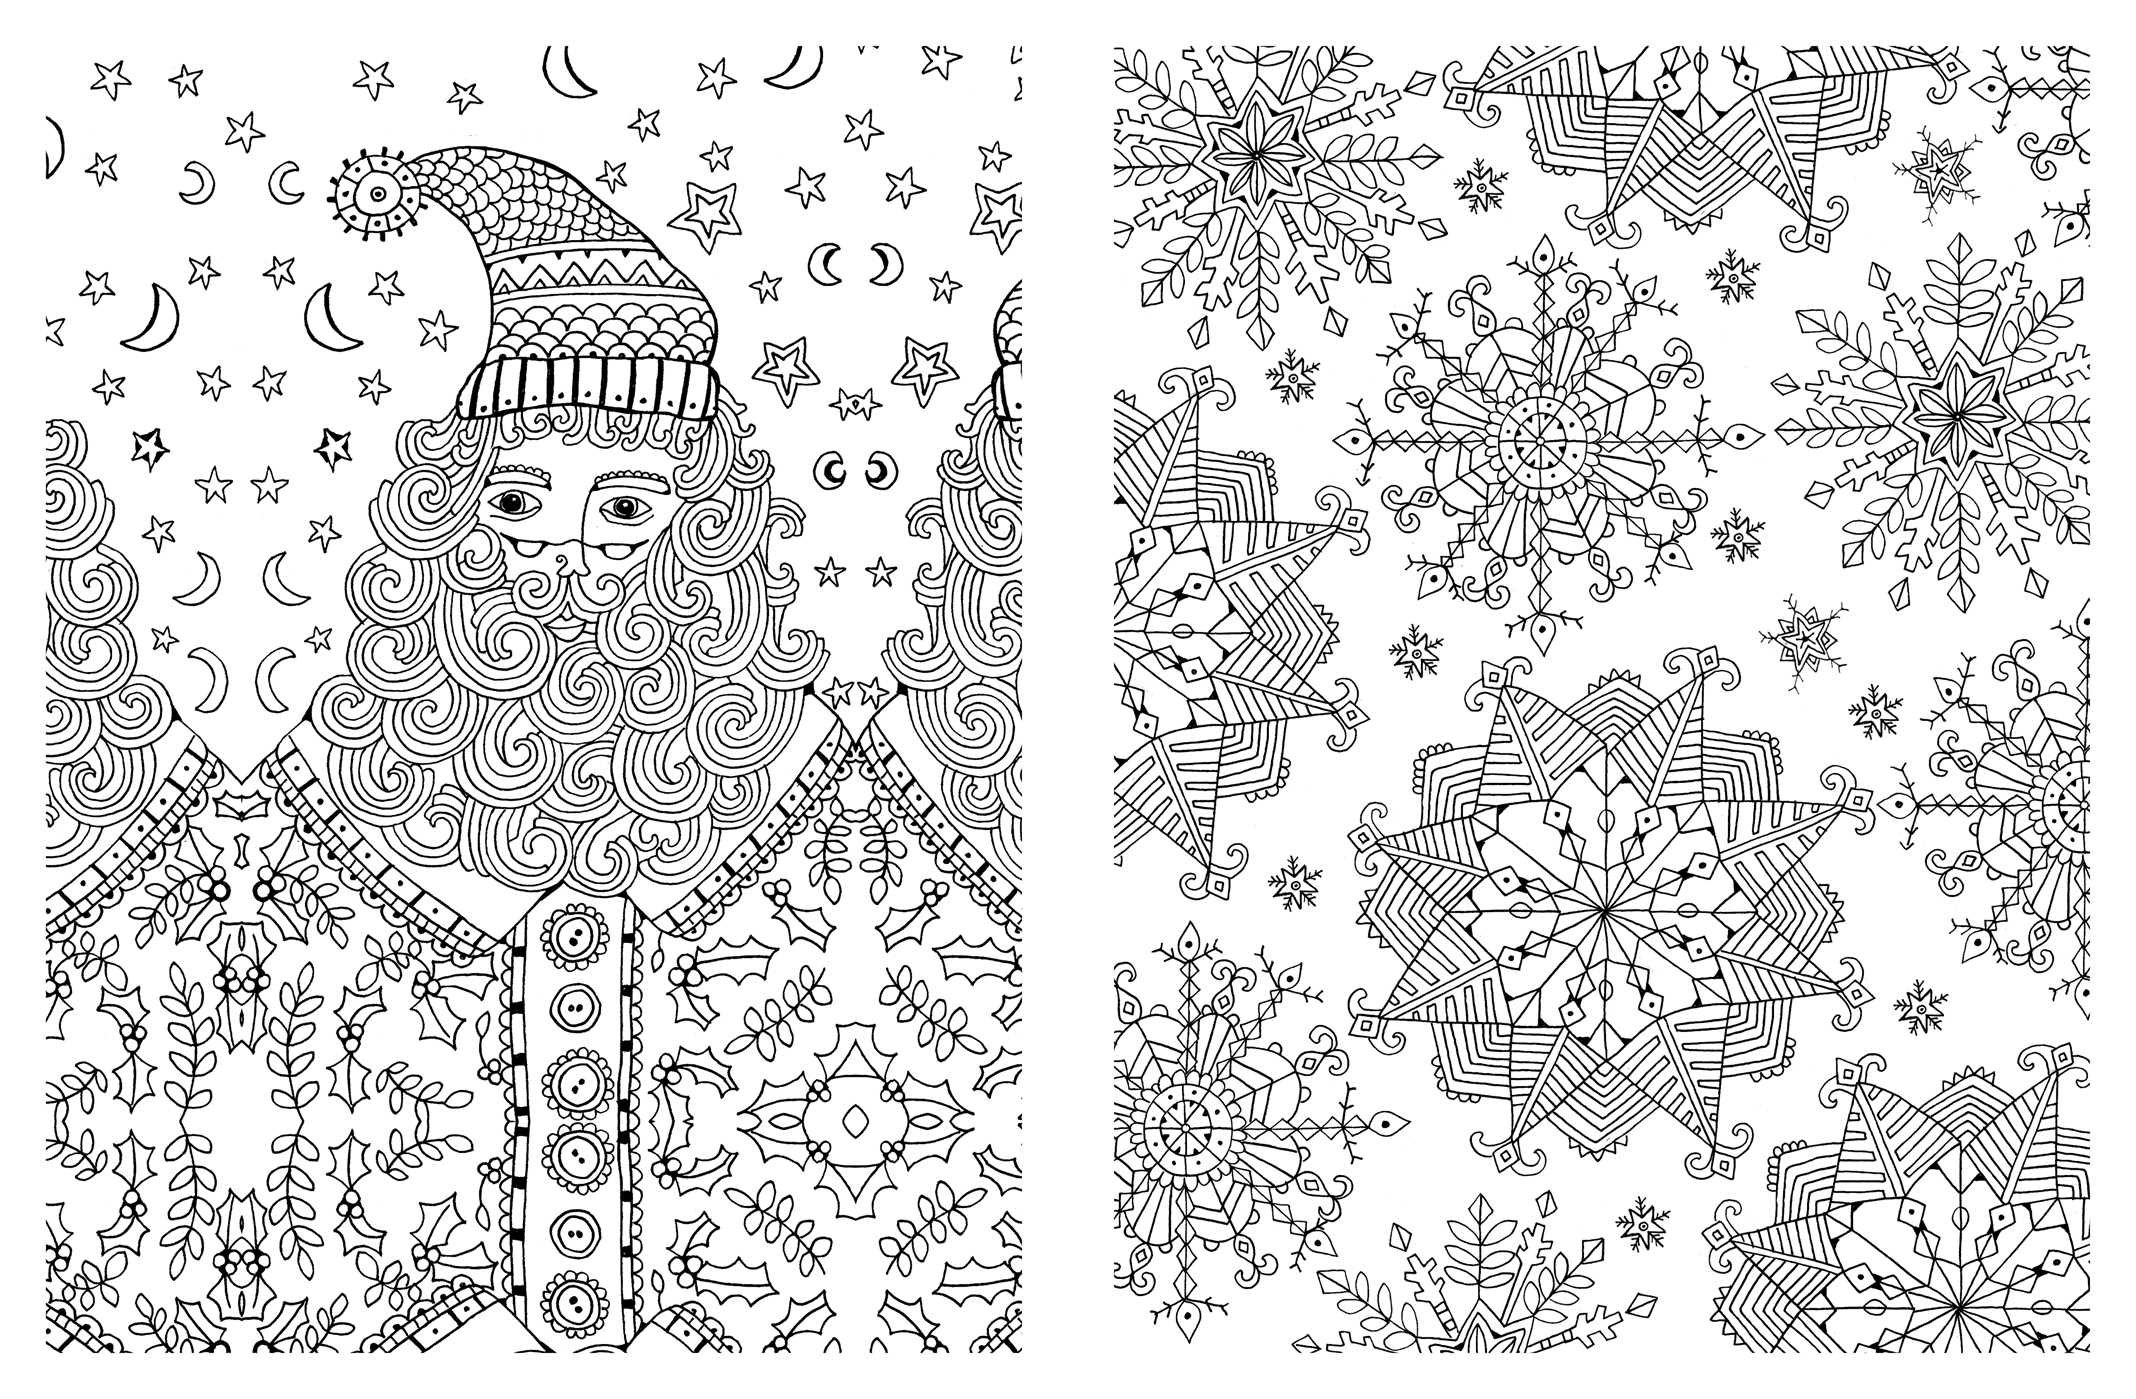 amazoncom posh adult coloring book christmas designs for fun relaxation posh coloring books 0842988126750 andrews mcmeel publishing books